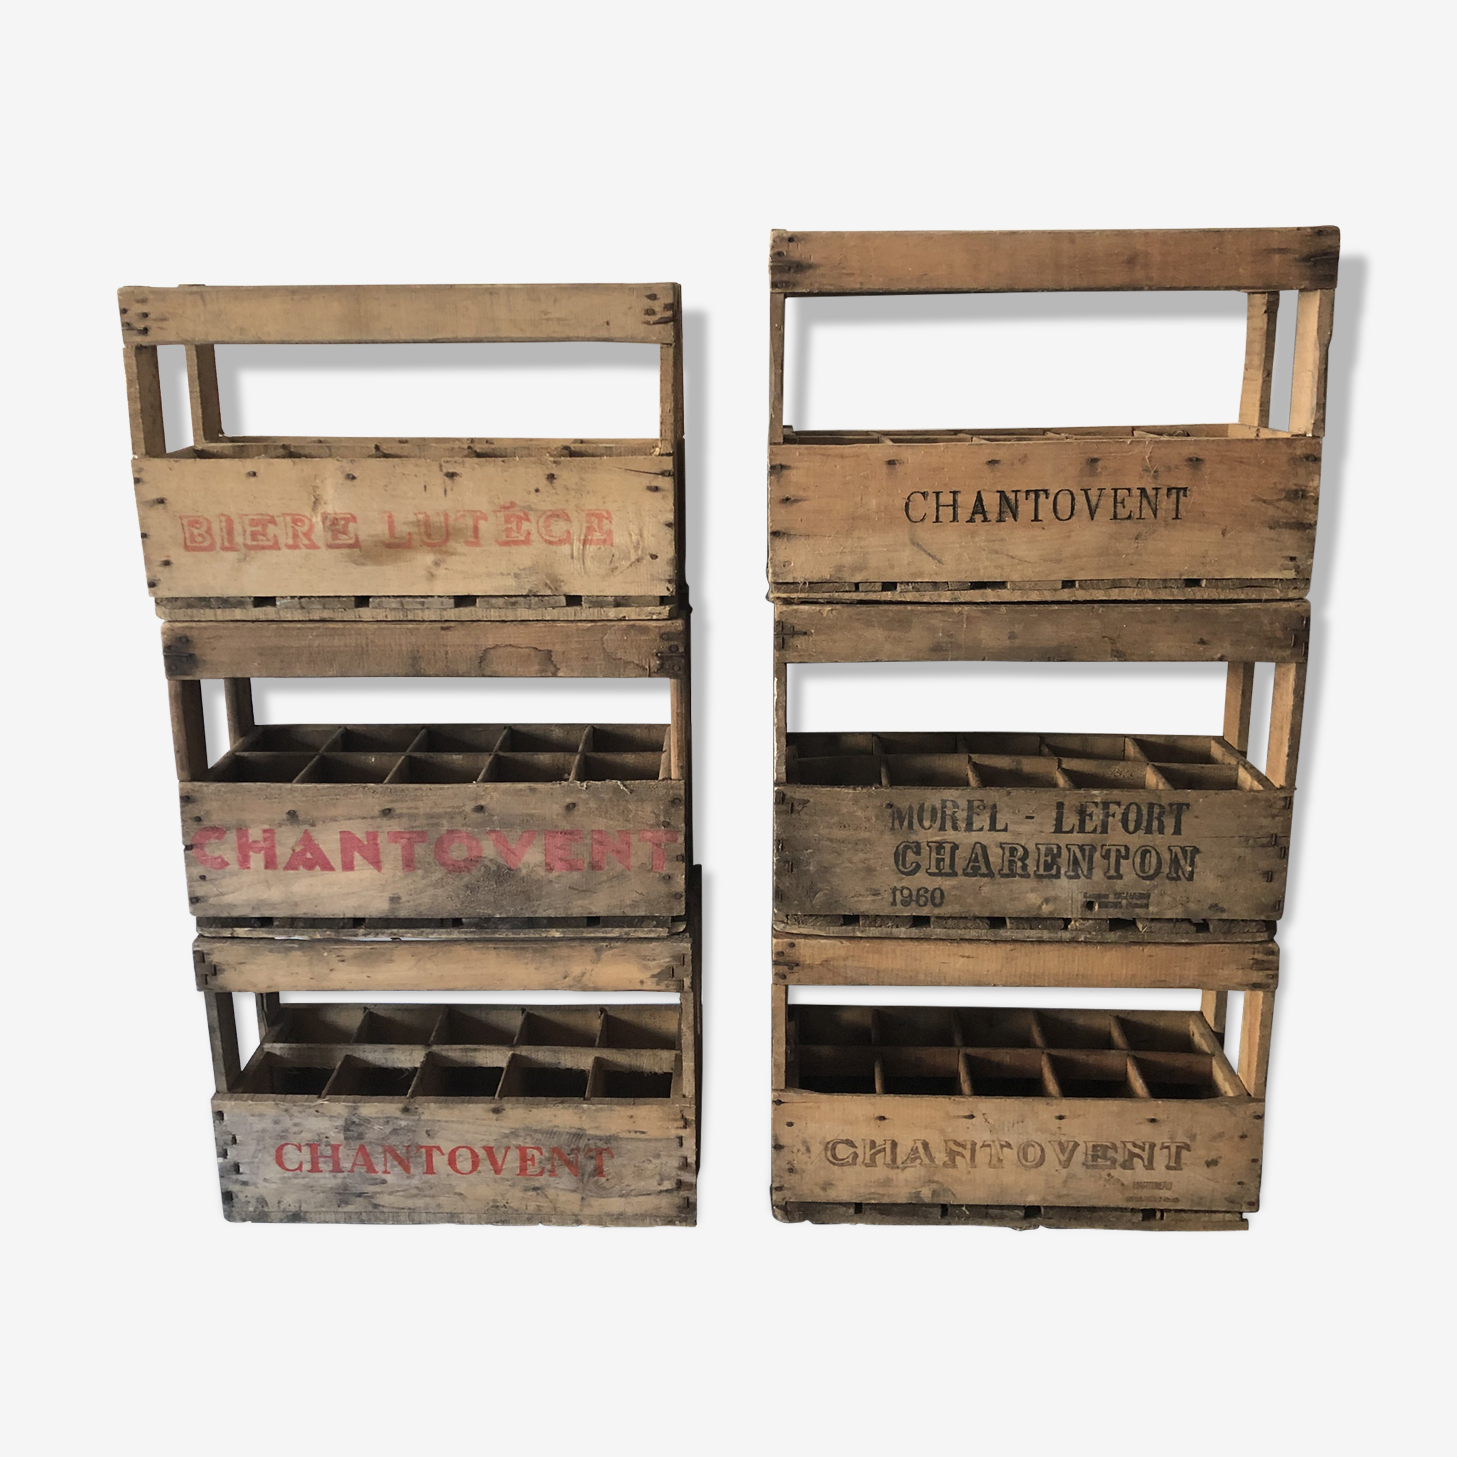 Lot of 6 bottle cases / old wooden crates